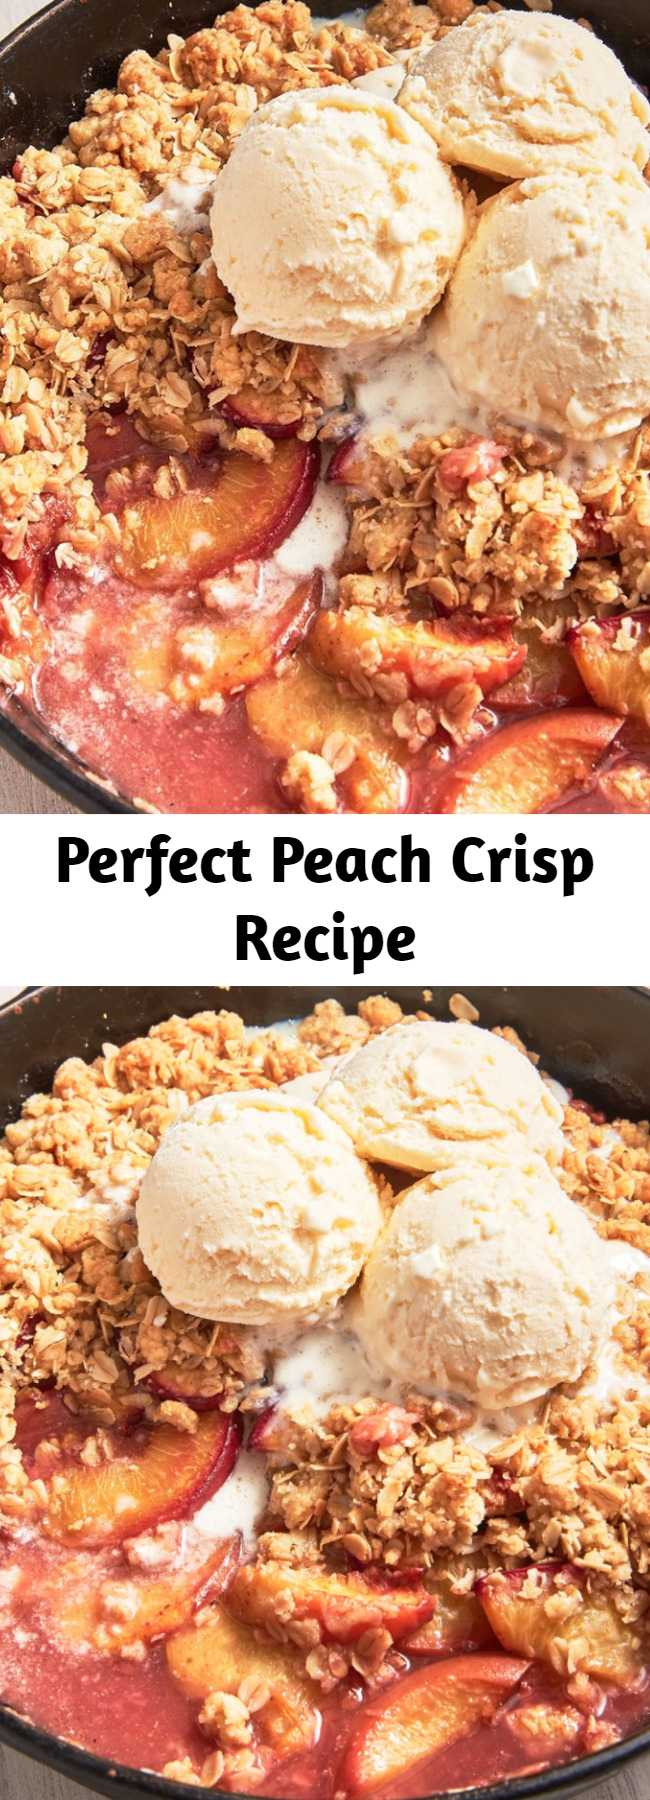 Perfect Peach Crisp Recipe - Peach Crisp is an old-fashioned delight that never fails to please. Always a crowd pleaser.